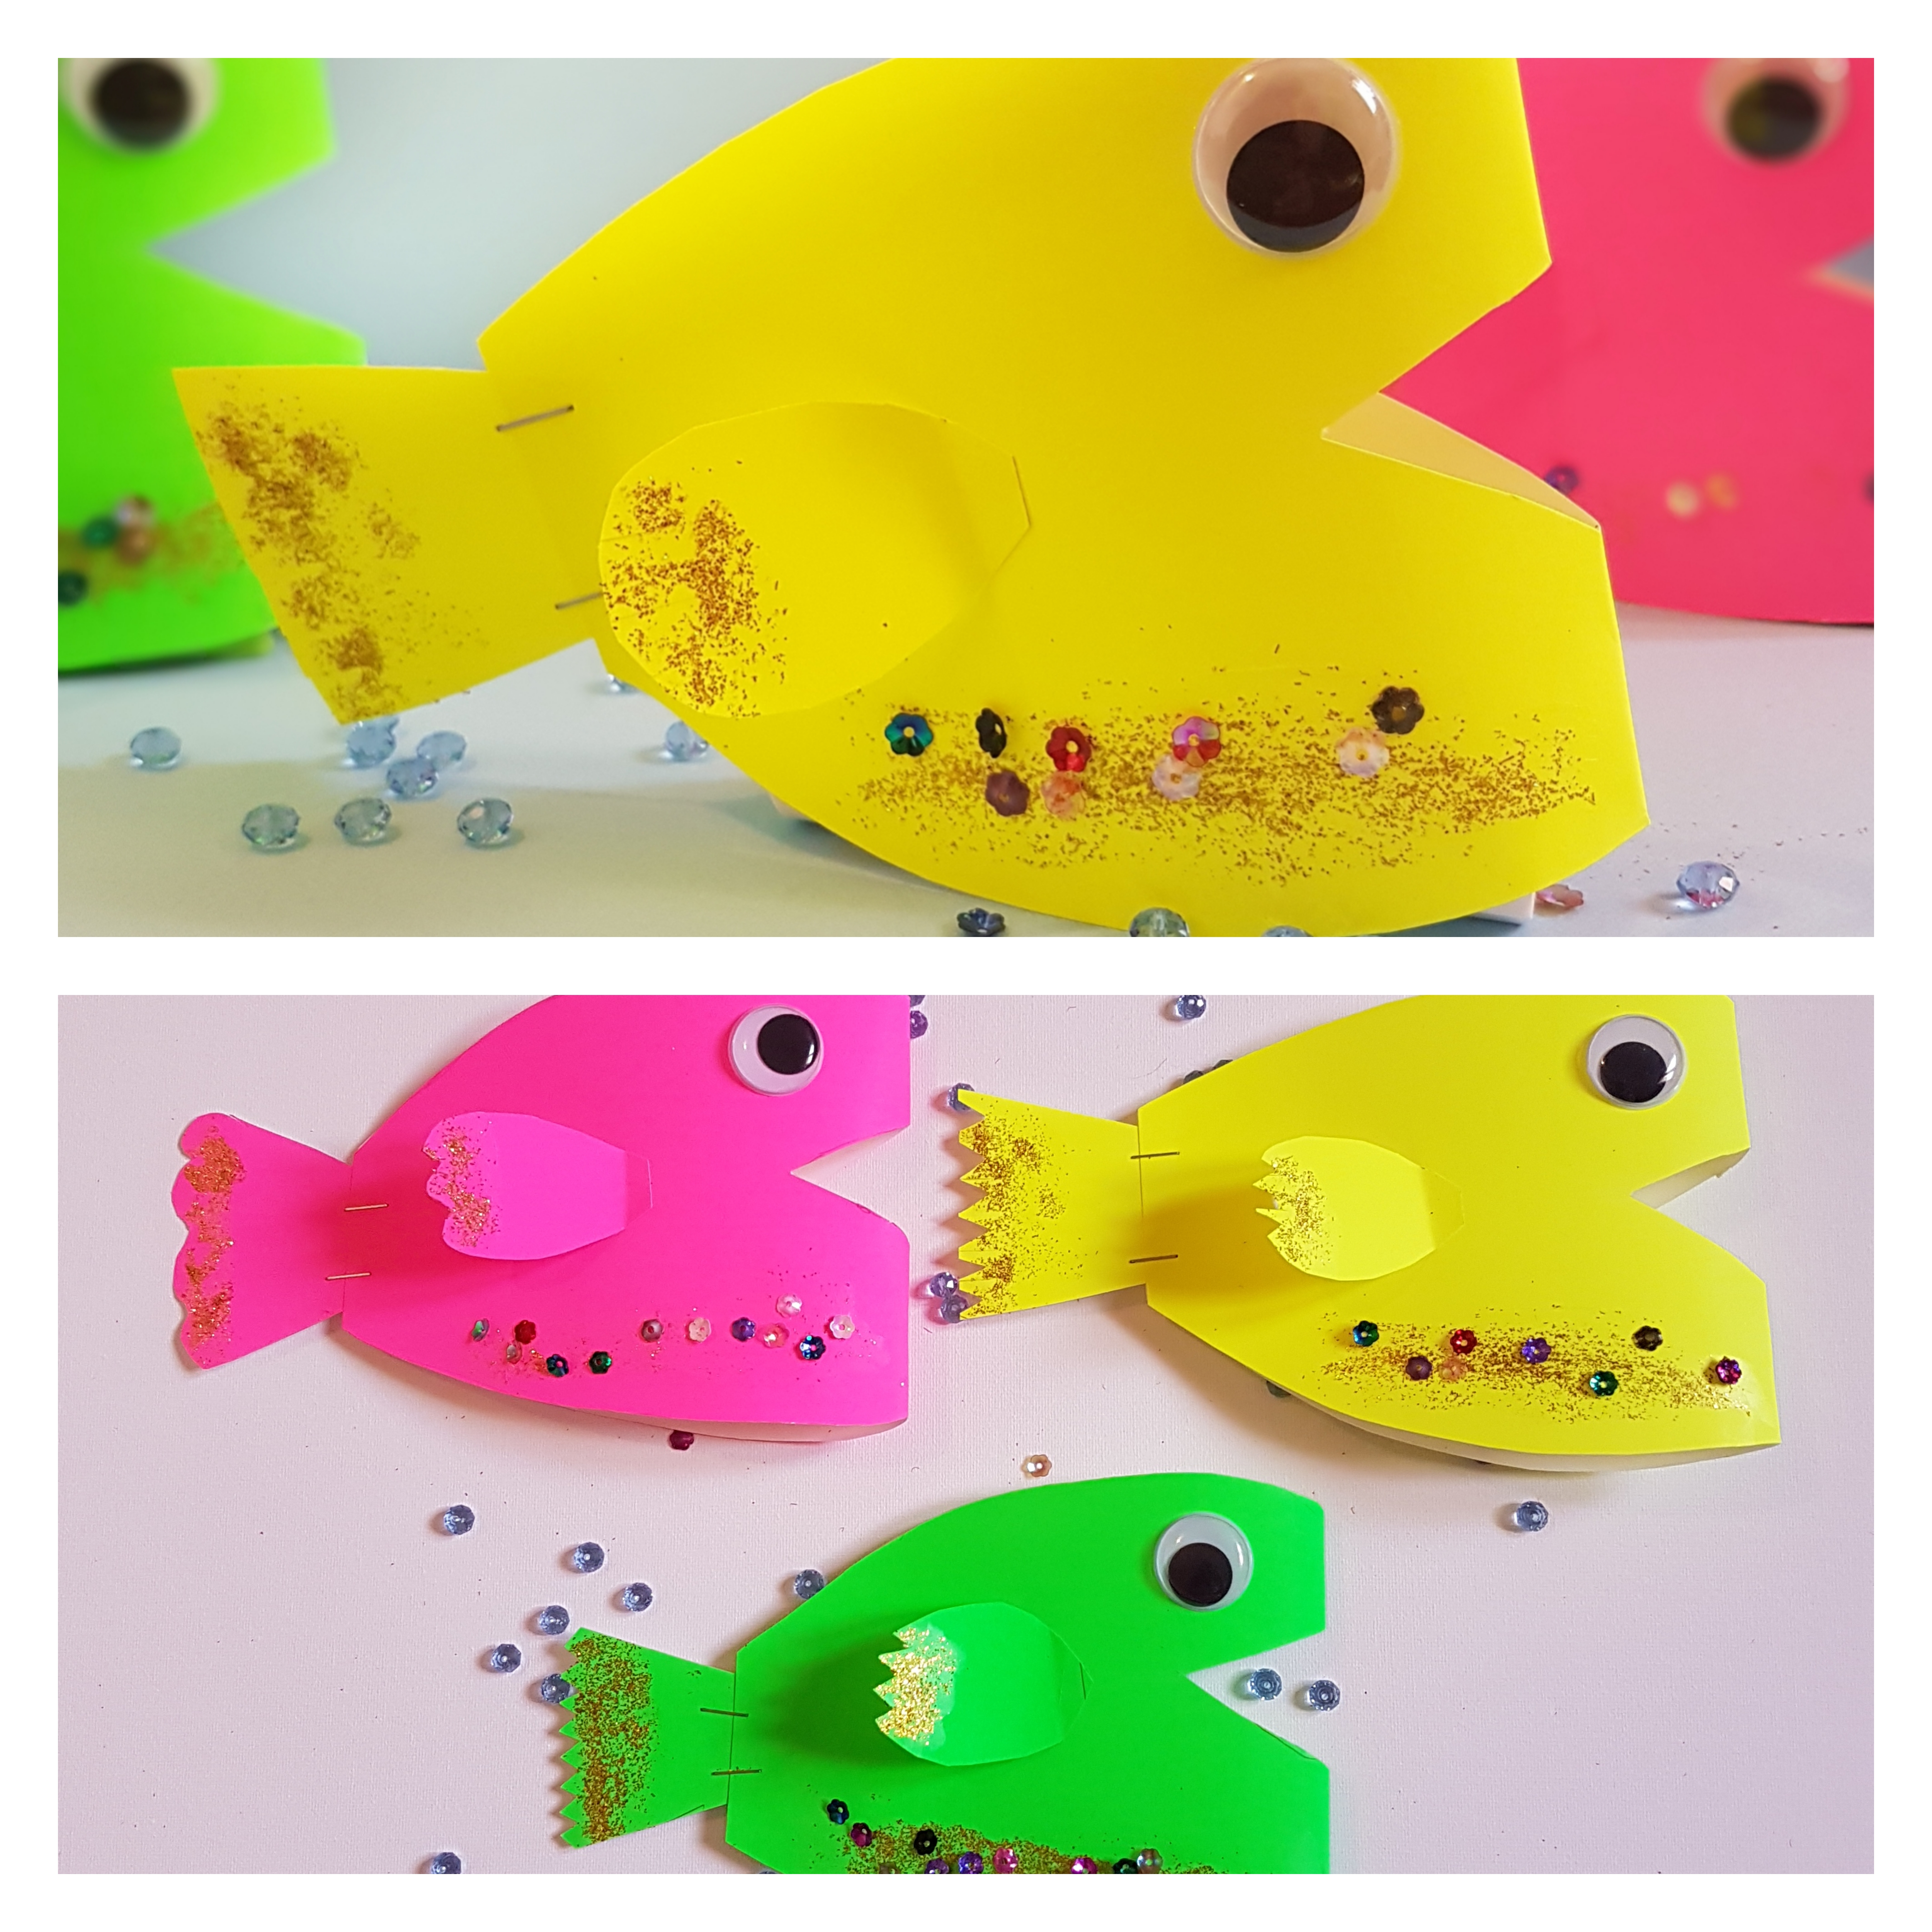 Construction paper fish craft 1